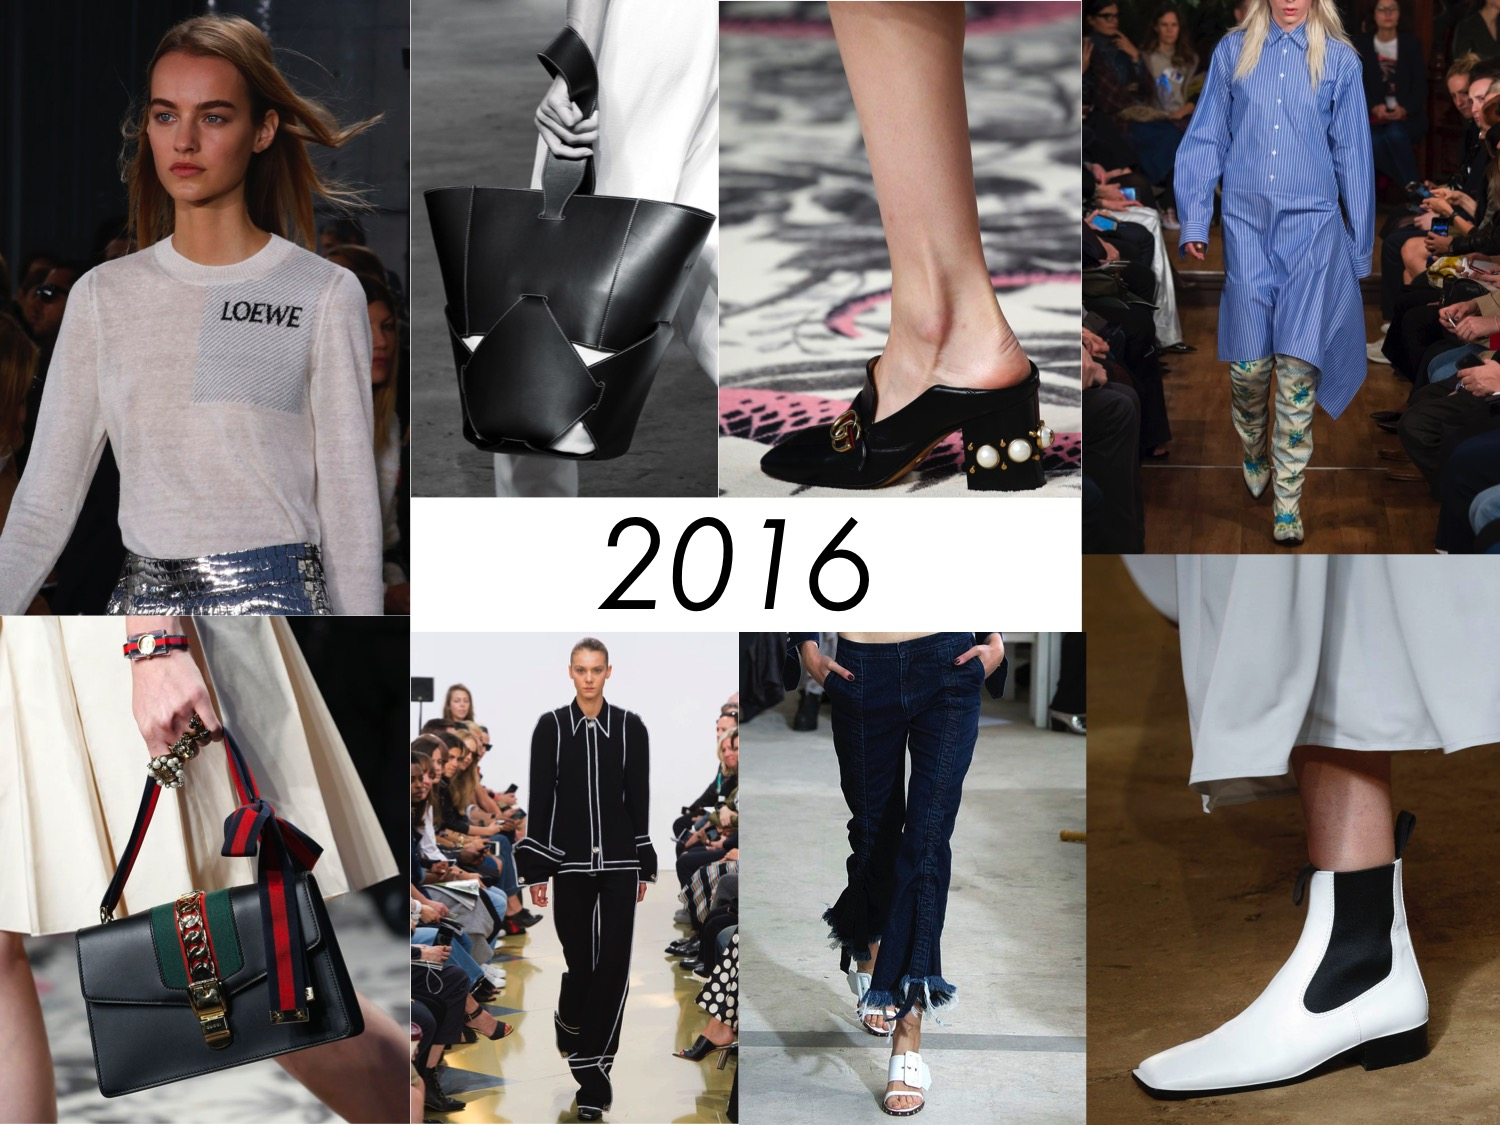 2015 style faves and 2016 stye predictions2